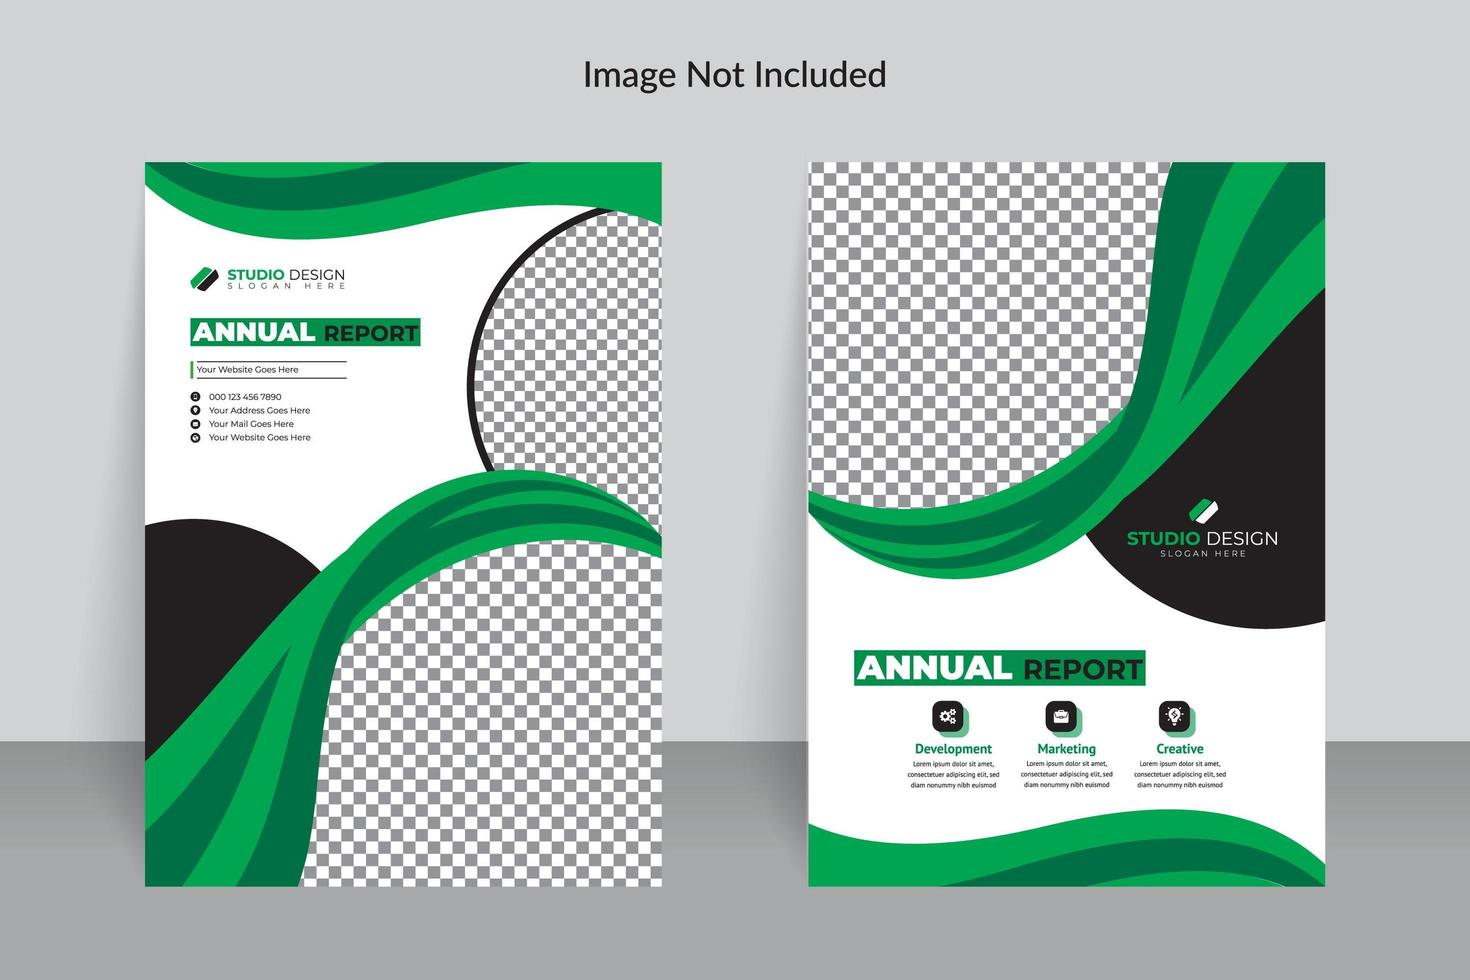 Business Annual Report Template With Green Details Download Free Vectors Clipart Graphics Vector Art